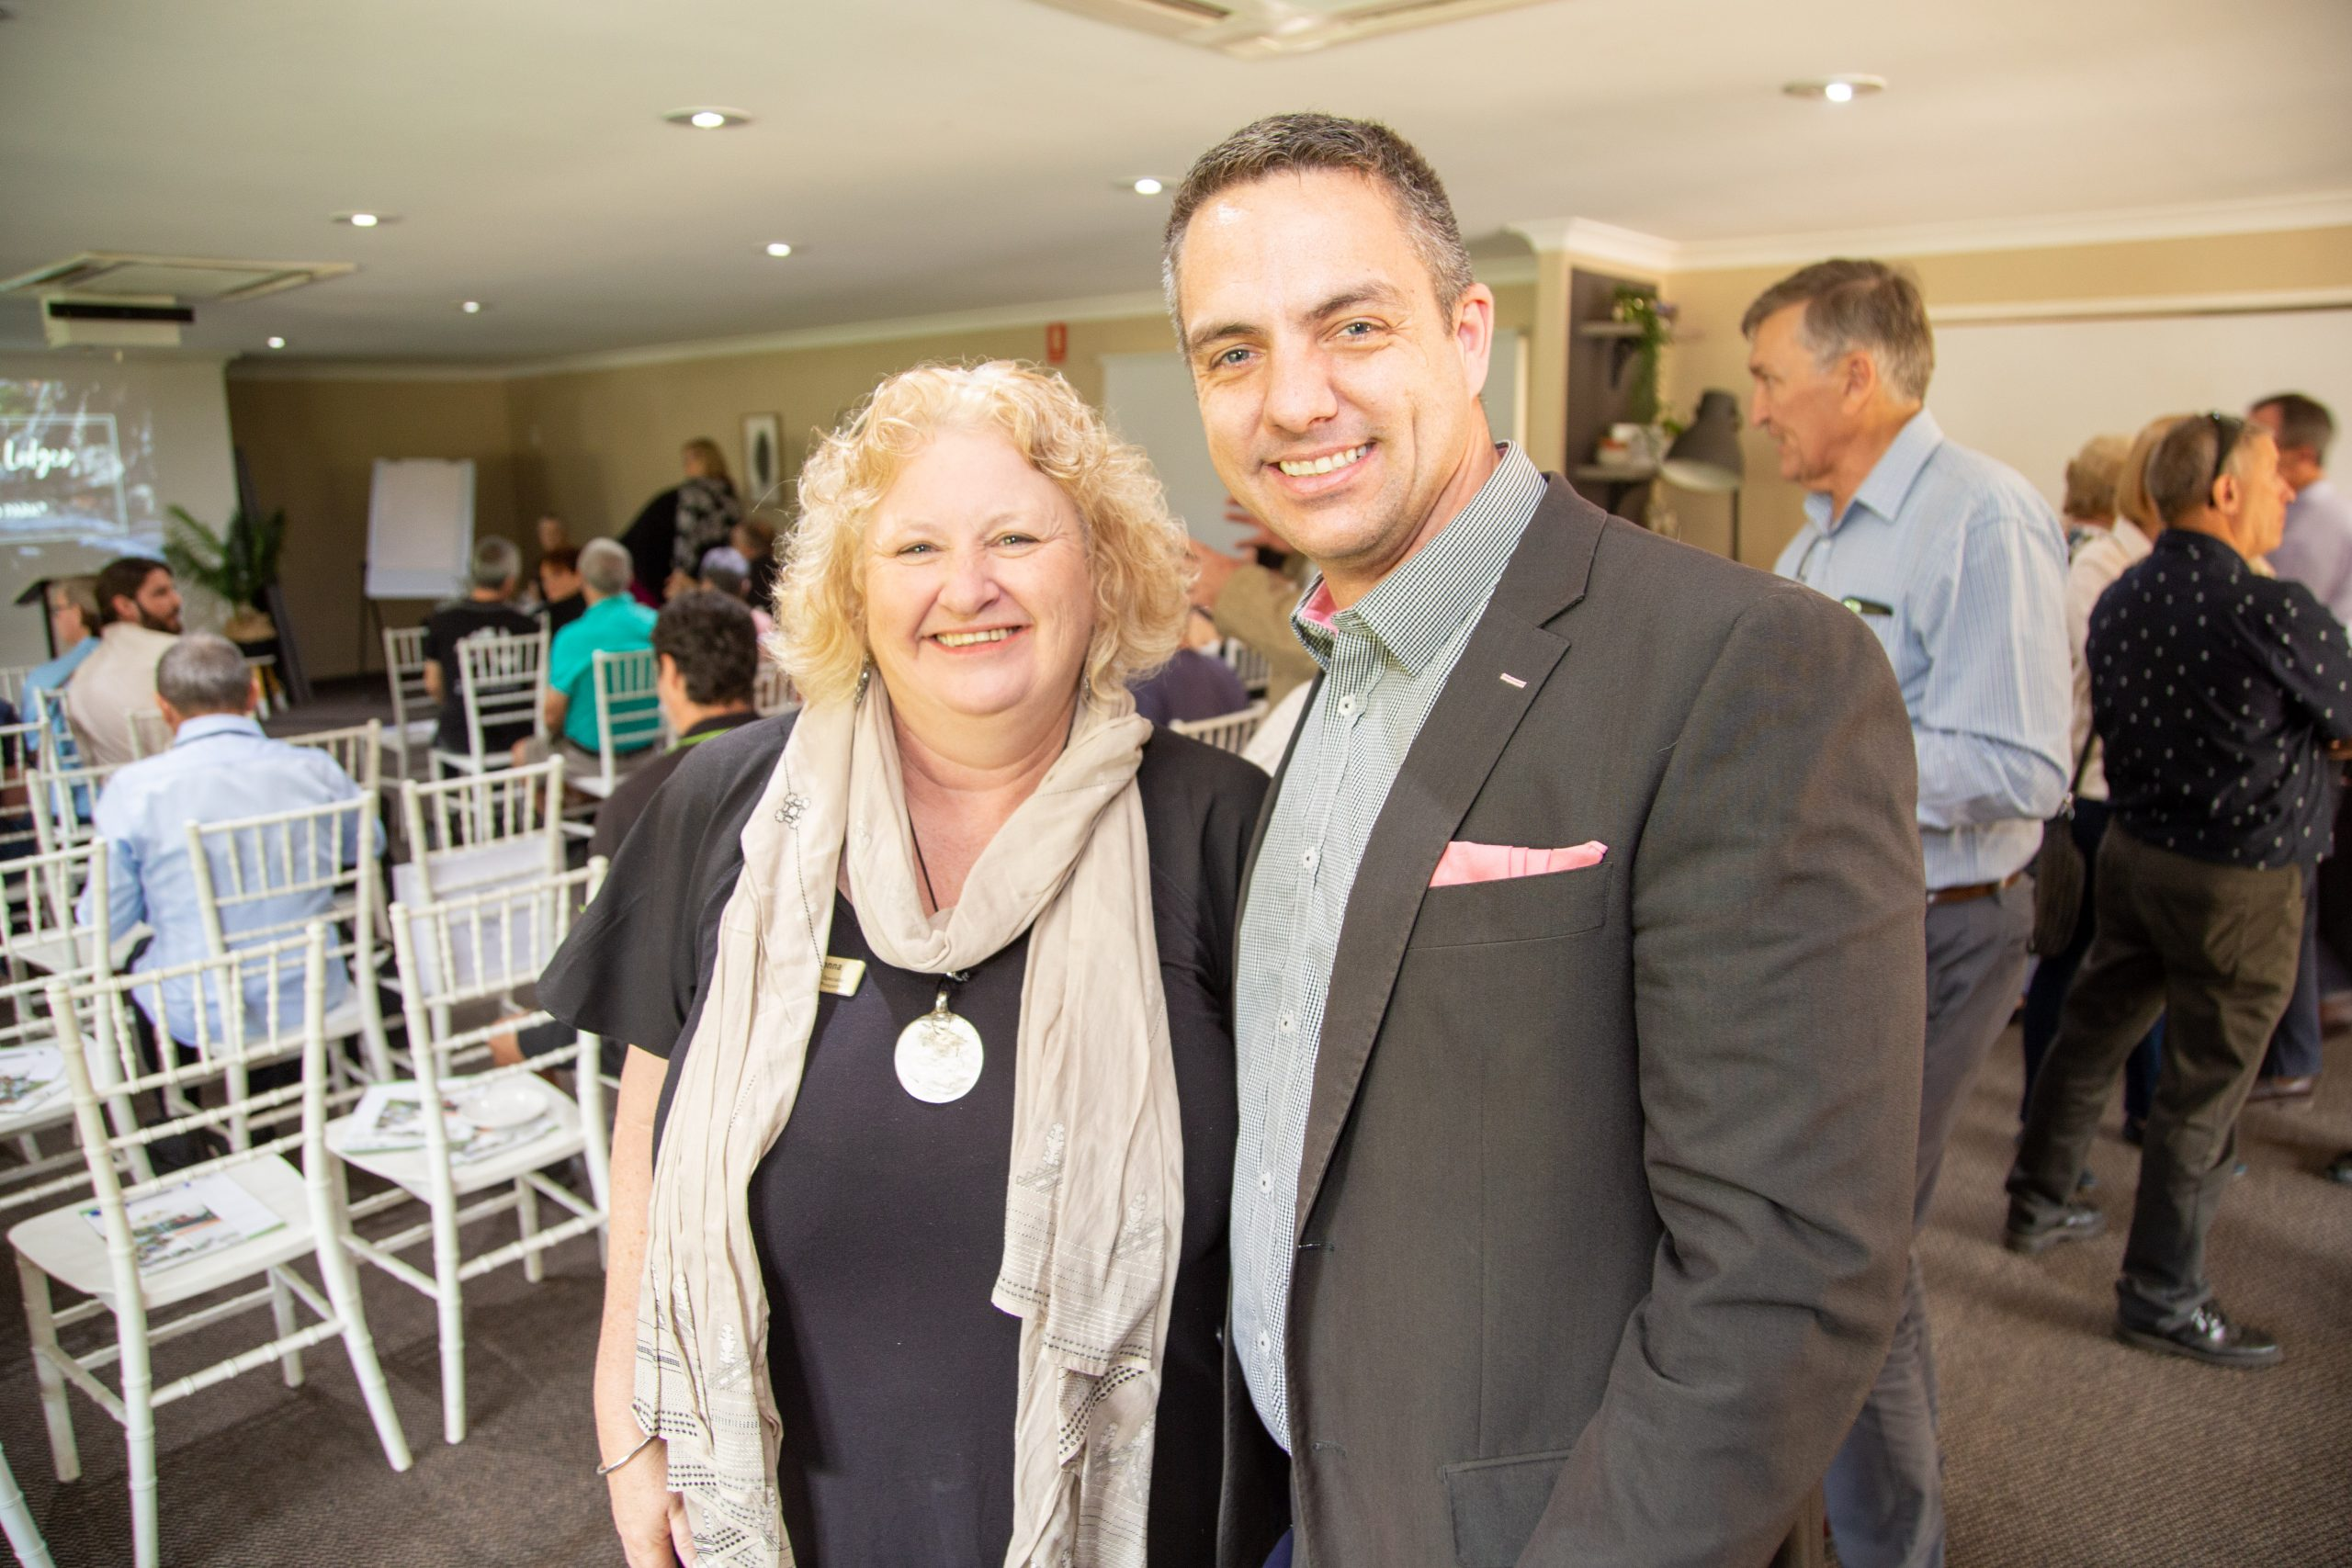 Donna Foster, Scenic Rim Regional Council, Craig Royle, Songbirds Restaurant and Accommodation.